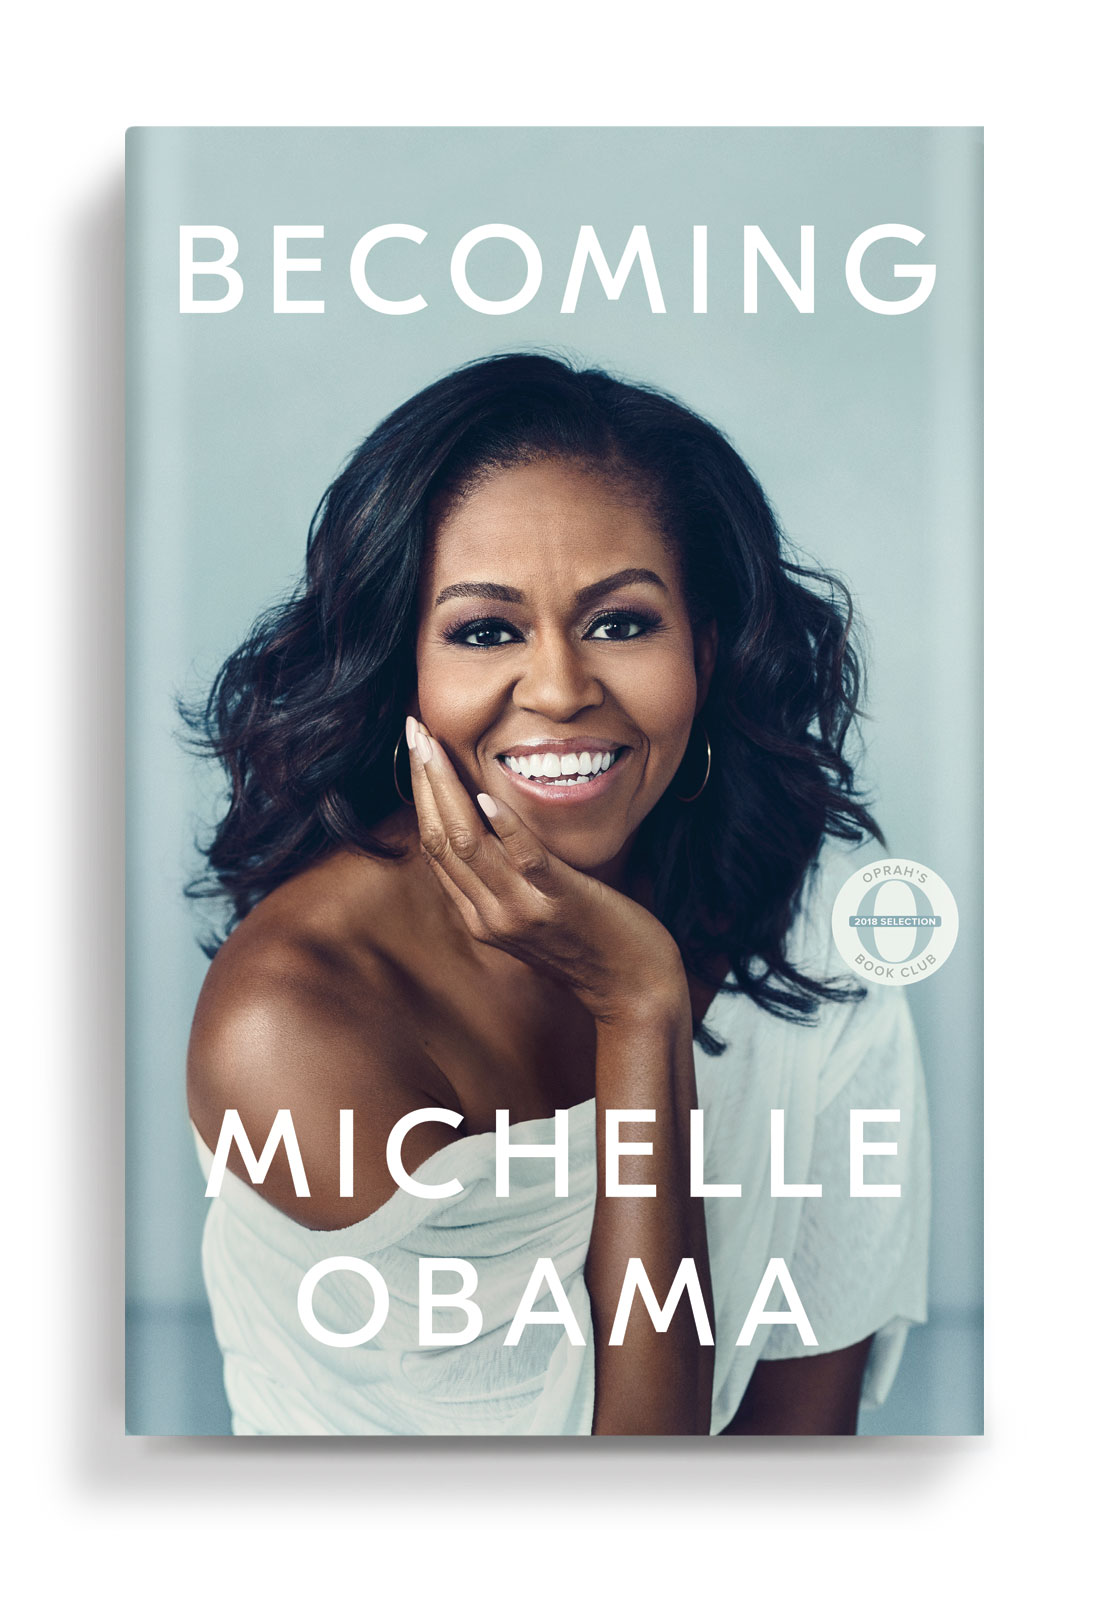 This memoir by Mrs. Michelle Obama has touched my heart in ways I wasn't prepared for